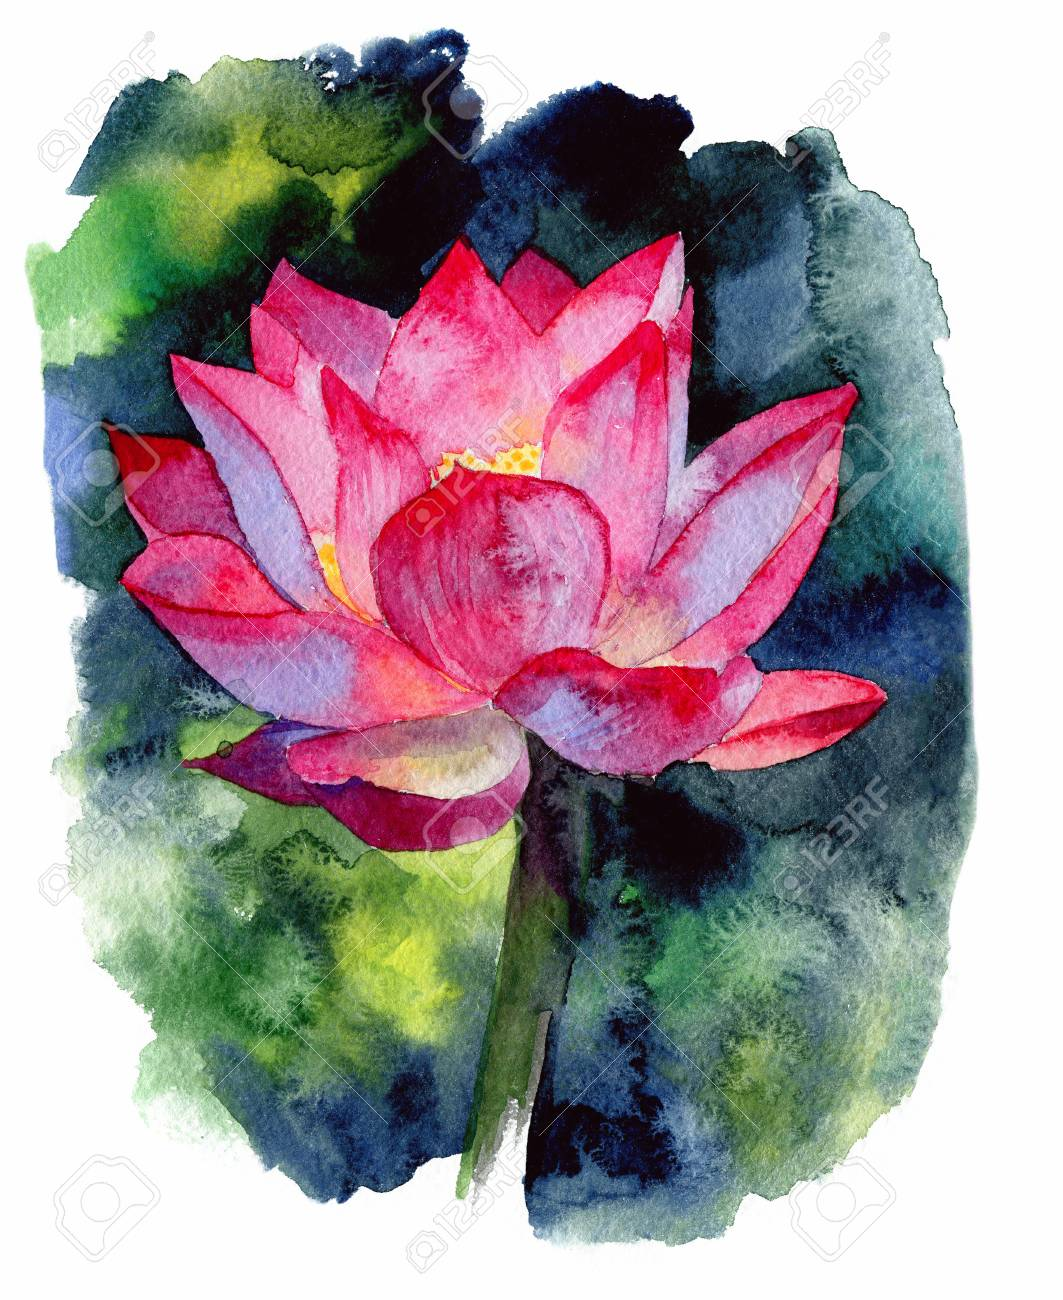 Watercolor Painting Of Single Lotus Flower Hand Drawn Illustration